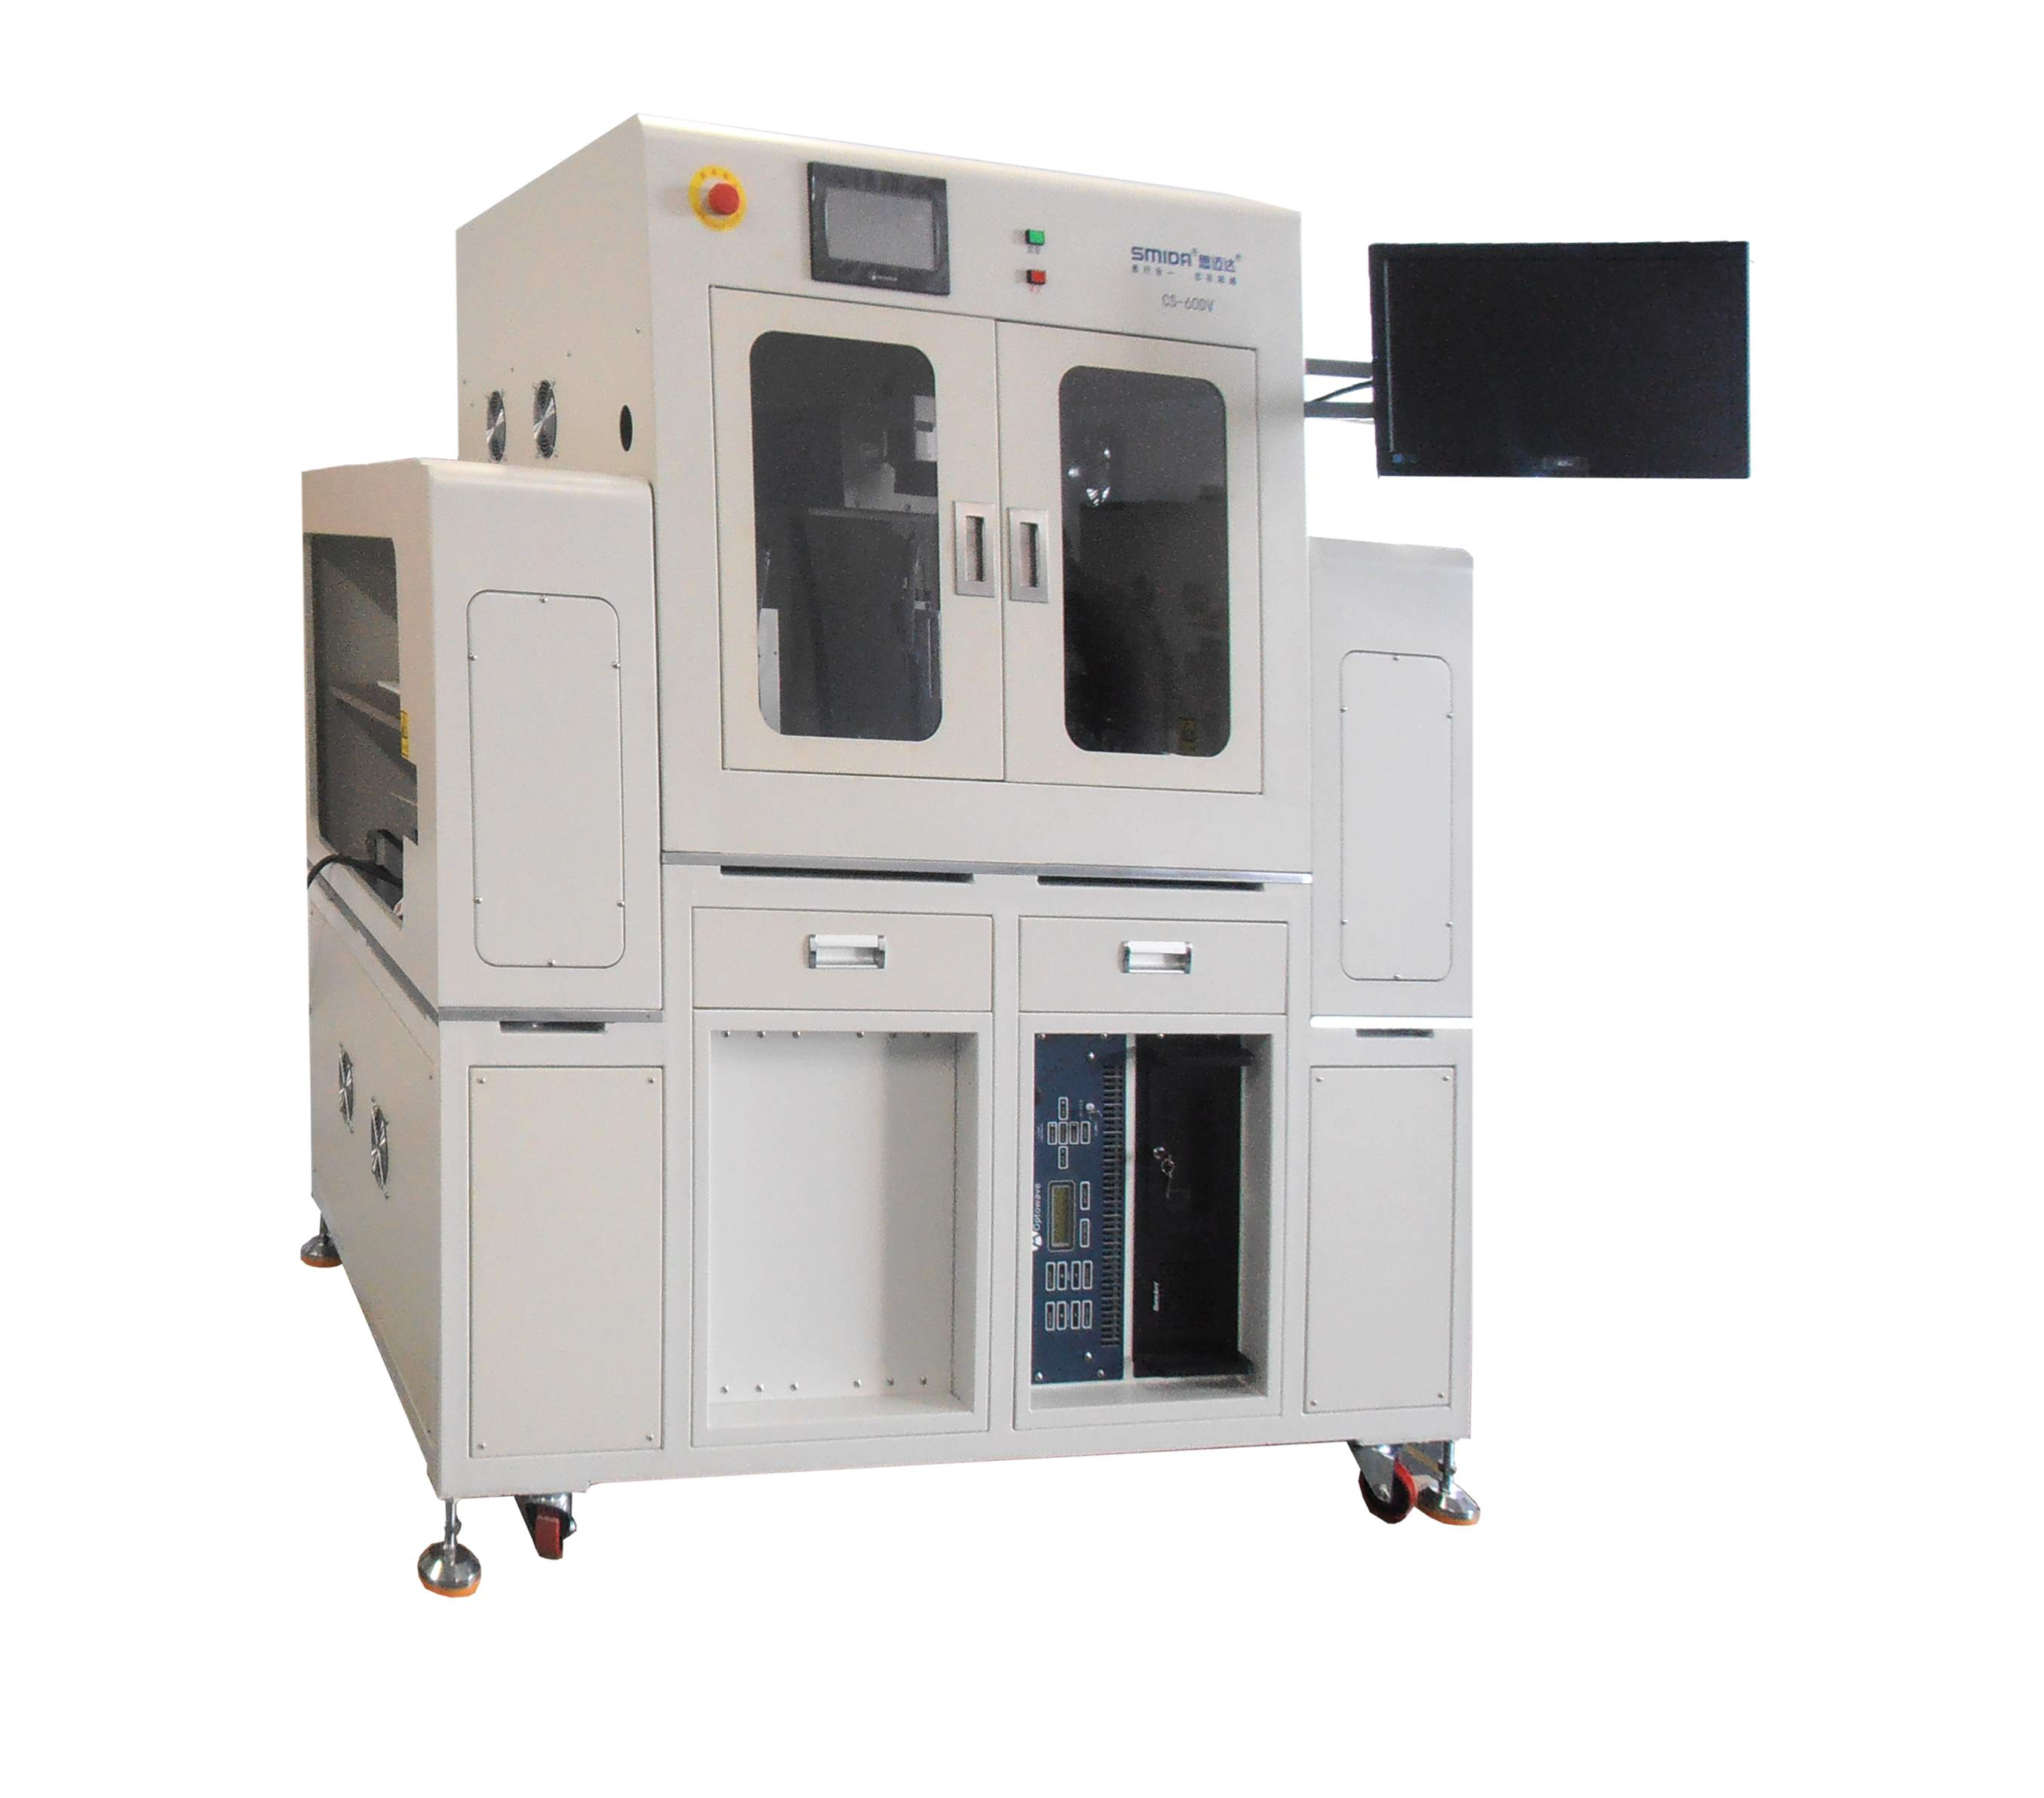 Full automatic laser marking machine